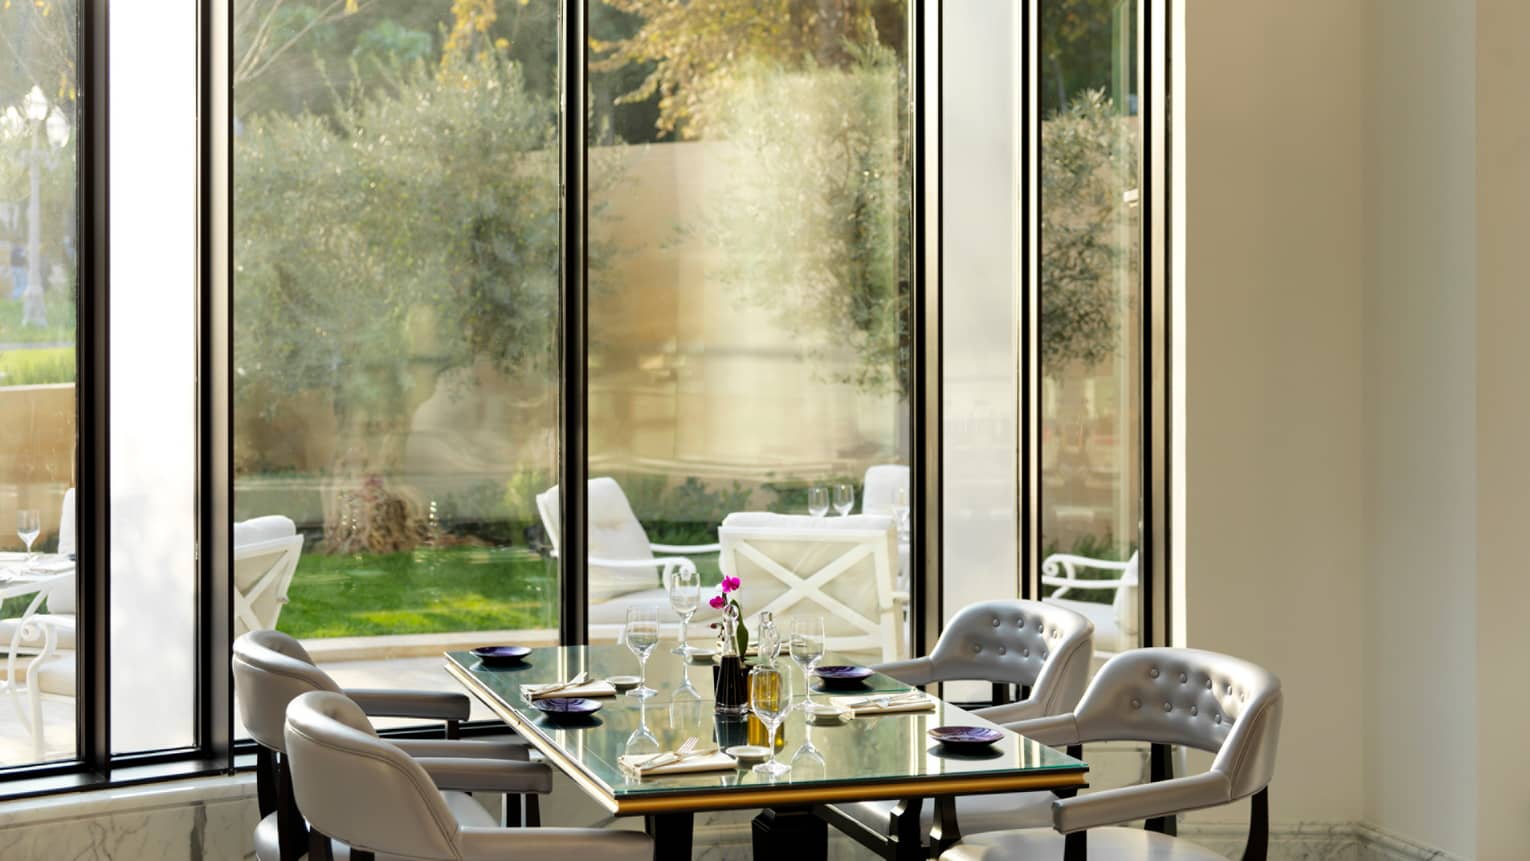 Zafferano restaurant with tall sunny window with dining table and four chairs